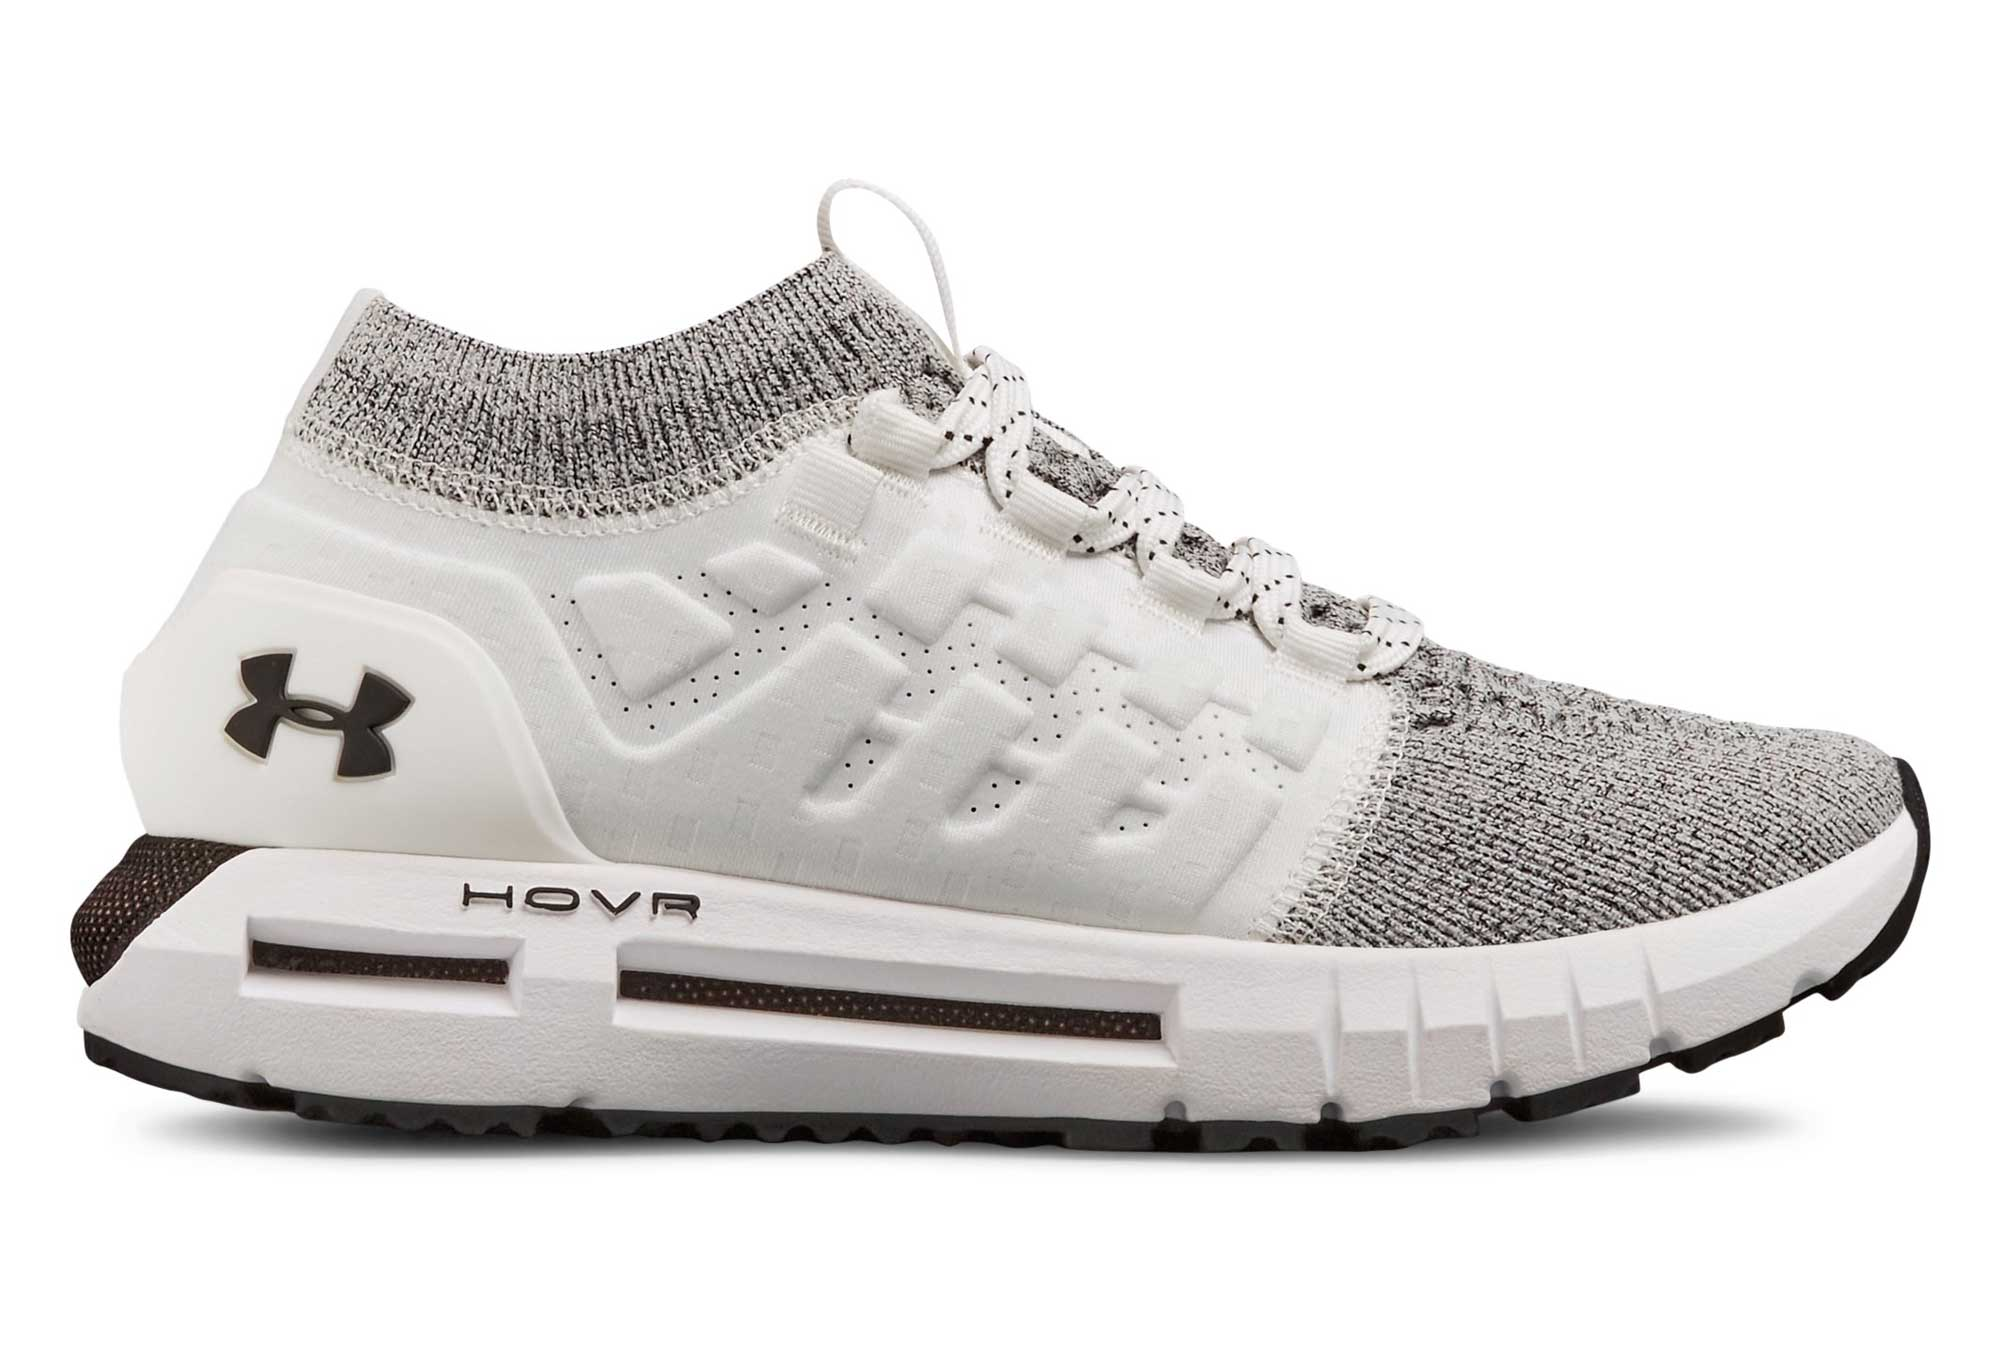 De Blanc Chaussures Running Hovr Femme Phantom Under Armour zdCSq